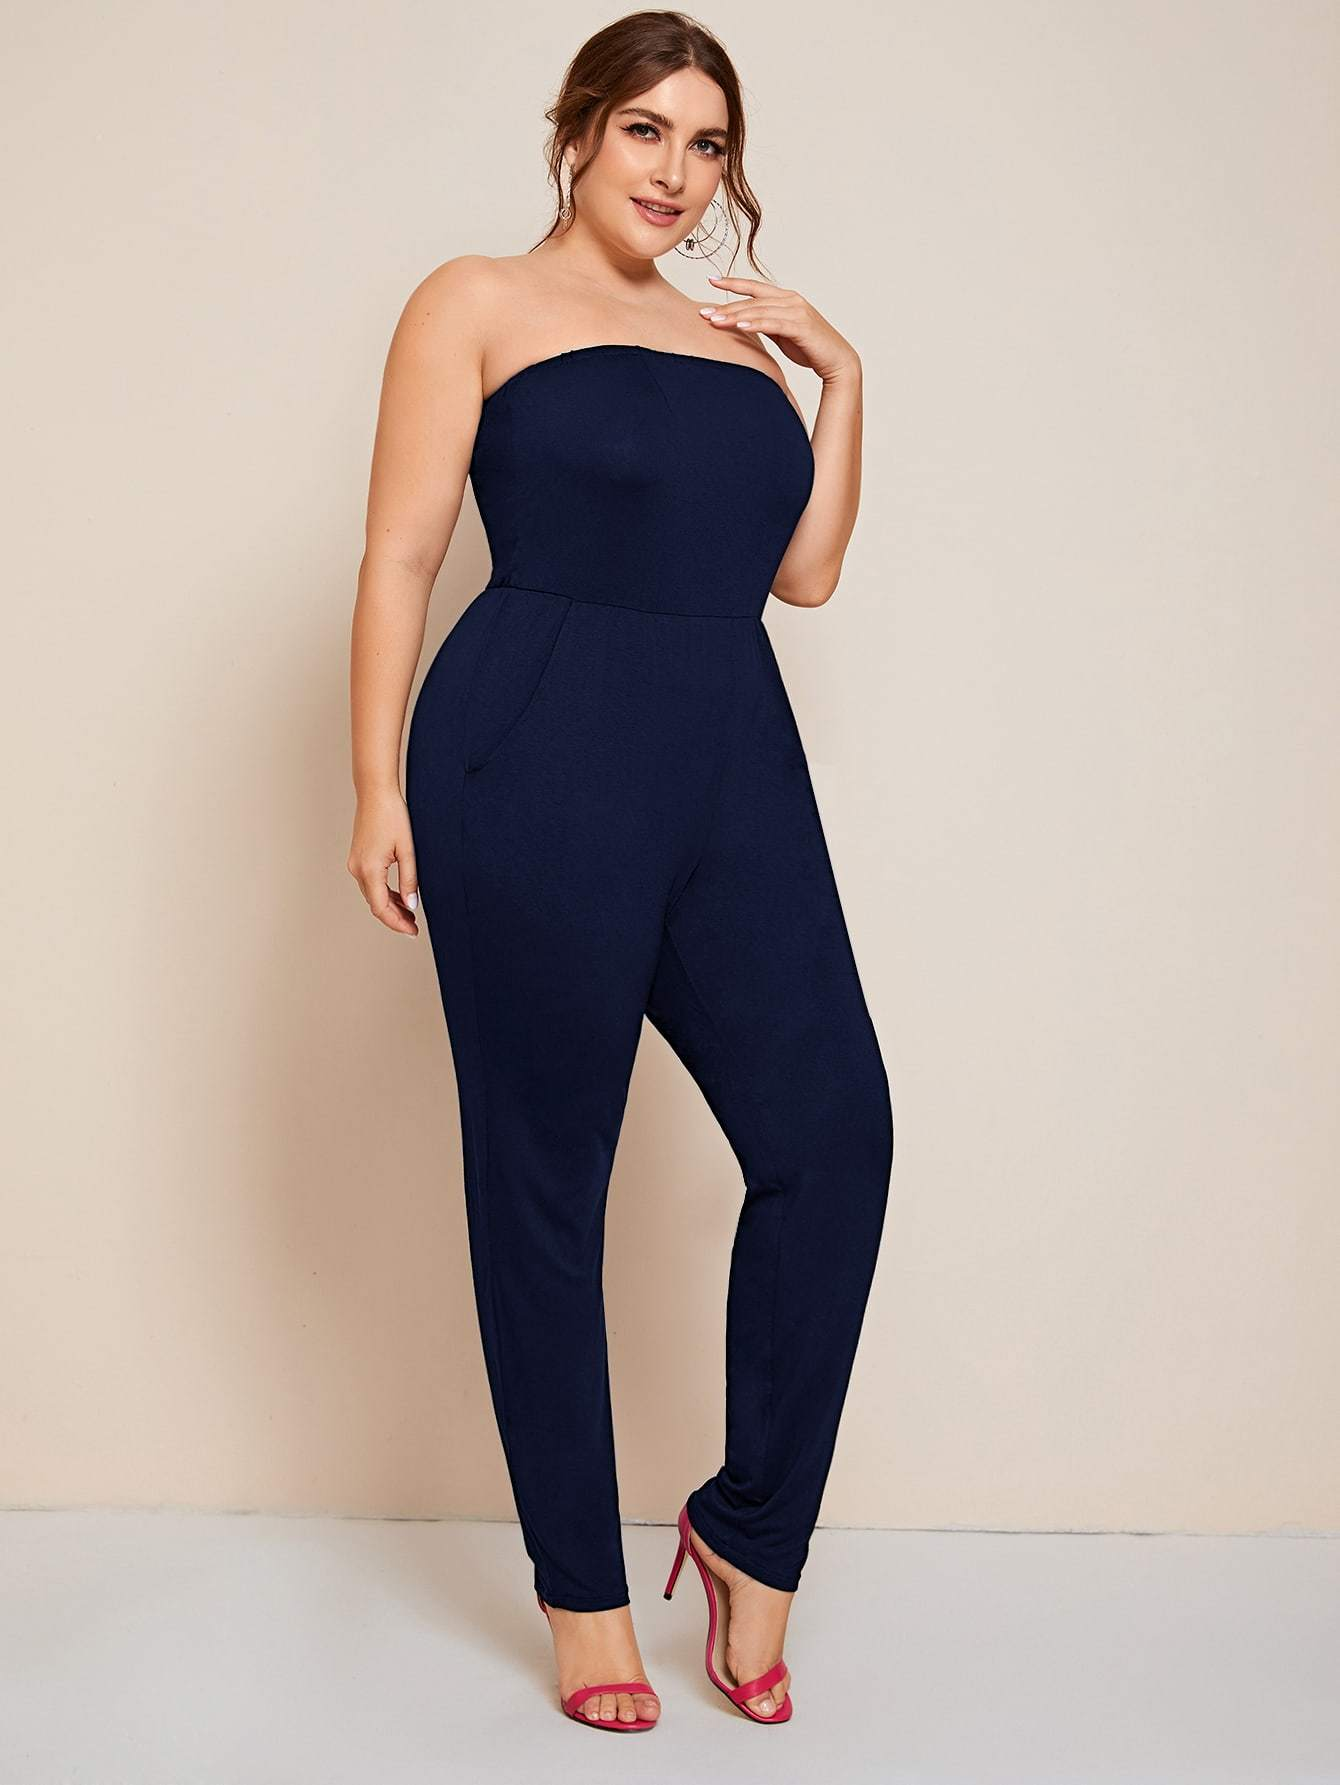 Plus Pocket Side Tube Jumpsuit - FLJ CORPORATIONS